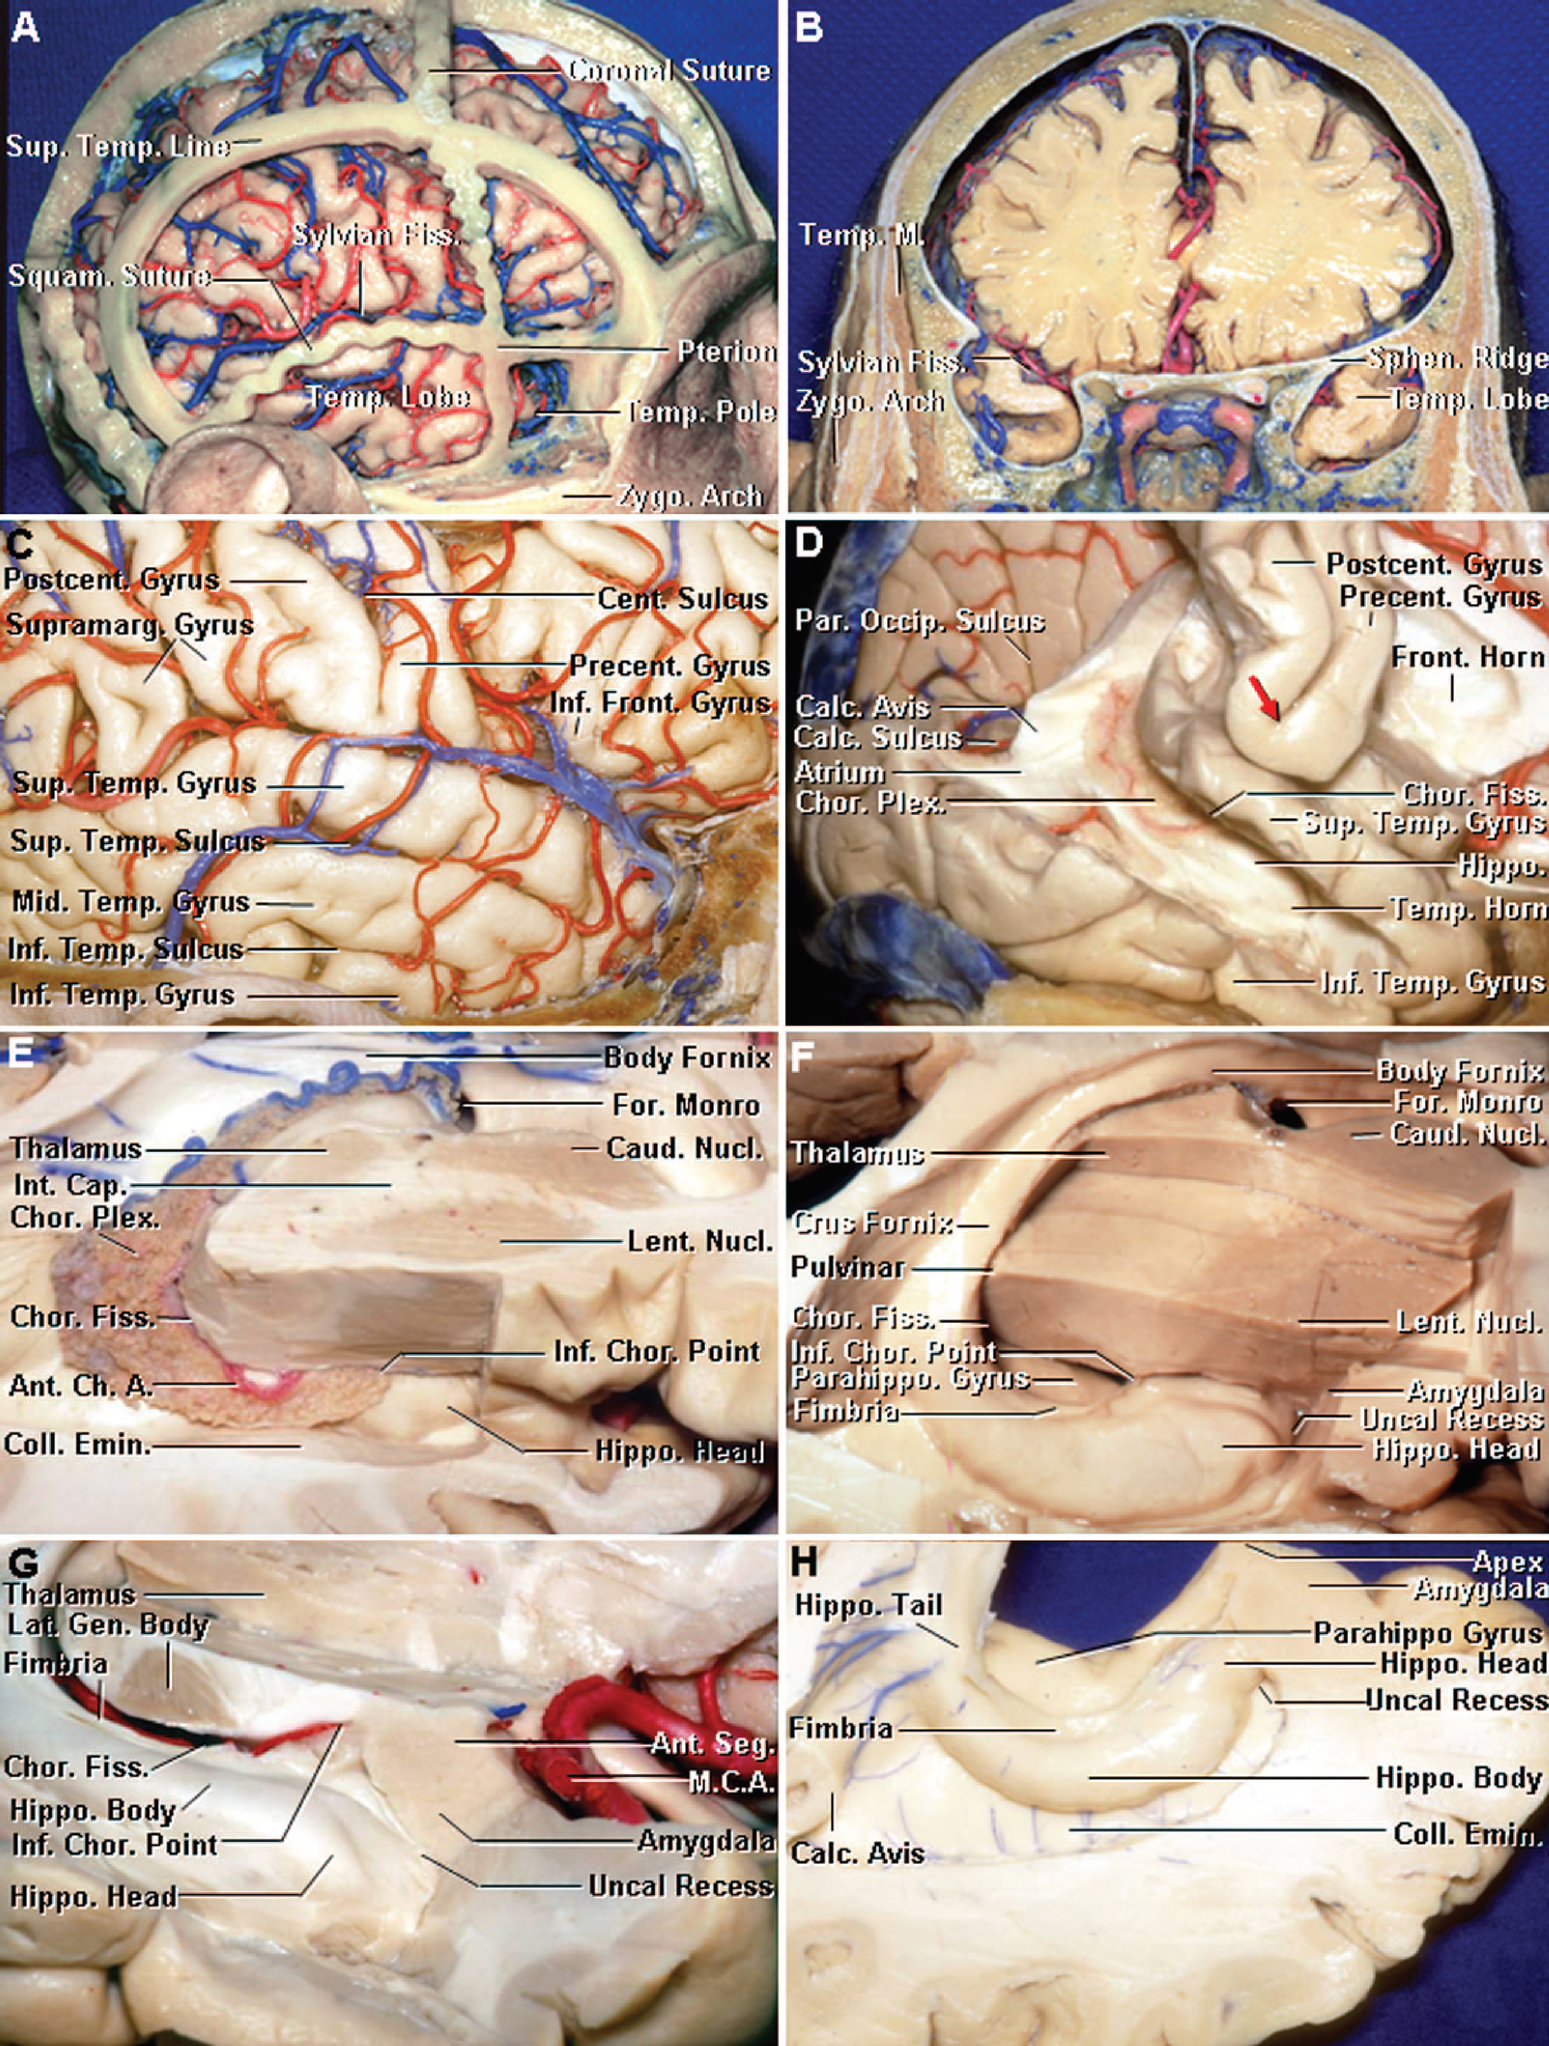 Figure 1. Dissection photographs. A, the relationships of the temporal lobe and horn, cranial sutures, and cortical surfaces of the right side. The coronal, sagittal, squamosal, and lambdoid sutures and the superior temporal line have been preserved and the dura has been opened. The pterion is located at the lateral margin of the sphenoid ridge near the junction of the coronal, squamosal, and frontosphenoid sutures and the lateral end of the greater sphenoid wing and stem of the sylvian fissure. The squamosal suture follows the anterior part of the posterior limb of the sylvian fissure before turning downward, at the level of the postcentral and supramarginal gyri, to cross the junction of the middle and posterior third of the temporal lobe. The pole of the temporal pole fits into the cupped inner surface of the greater wing of the sphenoid bone. Most of the lateral surface of the temporal lobe is positioned deep to the squamous part of the temporal bone; however, the posterior part of the lateral surface extends beyond the posterior limit of the squamous suture, deep to the parietal bone. The basal surface of the temporal lobe sits on the floor of the middle fossa and is positioned at the level of the upper edge of the zygomatic arch. B, the anterior view of a coronal section, at the level of the sylvian fissure on the right side and the sphenoid ridge in the left side. The pole of the temporal lobe extends forward under the sphenoid ridge and below the sylvian fissure. The inferolateral edge of the temporal lobe is positioned at the lateral edge of the floor of the middle fossa at the level of the zygomatic arch. C, the lateral view of the right temporal lobe. The temporal convexity is composed of the superior, middle, and inferior temporal gyri, which are divided by the superior and inferior temporal gyri. The inferior temporal gyrus folds around the lower margin of the hemisphere onto the lateral part of the basal hemispheric surface. The supramarginal gyrus wraps around the upturned posterior end of the sylvian fissure. D, that the frontal and parietal lobes, above the level of the sylvian fissure, have been removed. The upper lip of the calcarine sulcus, formed by the cuneus, has been removed to expose the lingula that forms the lower bank of the calcarine sulcus. The temporal horn and hippocampus lie deep to the middle temporal gyrus, which has been removed. The atrium lies deep to the supramarginal gyrus. The central sulcus ascends between the precentral and postcentral gyri. There is commonly a gyral bridge (red arrow) connecting the precentral and postcentral gyri below the lower end of the central sulcus, in which case the central sulcus does not open directly into the sylvian fissure. The calcar avis is the prominence in the lower part of the medial atrial wall overlying the deep end of the calcarine sulcus. E, another right cerebral hemisphere with the frontal, parietal, and lateral part of the temporal lobes removed to expose the temporal horn. The choroid plexus, which attaches along the choroidal fissure, has been preserved. The inferior choroidal point, the anterior end of the plexal attachment in the temporal horn, is positioned behind the hippocampal head. The collateral eminence, located on the lateral side of the hippocampus, overlies the deep end of the collateral sulcus. F, that the choroid plexus has been removed in another specimen to expose the choroidal fissure located between the thalamus and fornix. The amygdala forms the anterior wall of the frontal horn. The uncal recess extends medially between the hippocampal head and the amygdala. The uncal recess is positioned lateral to the apex of the uncus. The upper surface of the parahippocampal gyrus is exposed medial to the fimbria. G, the enlarged view of another specimen. The choroidal fissure extends from the foramen of Monro to the inferior choroidal point located behind the head of the hippocampus. The choroid plexus, which attaches along the choroidal fissure, has been removed. The lower edge of the choroidal fissure in the temporal horn is formed by the fimbria of the fornix and the upper edge is formed by the thalamus. Opening the fissure between the lower surface of the thalamus and the fimbria of the fornix exposes the ambient cistern. The lateral geniculate body is exposed at the lower margin of the thalamus in the upper wall of the ambient cistern. The anterior wall of the temporal horn is formed by the amygdala, which tilts backward above, but is separated from the hippocampal head by the temporal horn. The uncal recess extends medially between the head of the hippocampus and amygdala. H, the superior view of a transverse section through the right temporal horn. The hippocampus and collateral eminence form the floor of the temporal horn. The amygdala occupies the anterior segment and the head of the hippocampus occupies the posterior segment of the uncus. The apex of the uncus is directed medially at the level of the uncal recess. The fimbria arises on the surface of the hippocampus. The upper surface of the parahippocampal gyrus is exposed medial to the fimbria. The collateral eminence overlies the deep end of the collateral sulcus, which extends along the basal surface on the lateral side of the parahippocampal gyrus. The hippocampus meets the calcar avis at the junction of the atrium and temporal horn. A.Ch.A., anterior choroidal artery; Ant., anterior; Calc., calcar, calcarine; Cap., capsule; Caud., caudate; Cent., central; Chor., choroid, choroidal; Coll., collateral; Emin., eminence; Fiss., fissure; Front., frontal; For., foramen; Gen., geniculate; Hippo., hippocampal, hippocampus; Inf., inferior; Int., internal; Lat., lateral; Lent., lentiform; M., muscle; M.C.A., middle cerebral artery; Mid., middle; Nucl., nucleus; Par. Occip., parieto-occipital; Parahippo., parahippocampal; Plex., plexus; Postcent., postcentral; Precent., precentral; Seg., segment; Sphen., sphenoid; Squam., squamosal; Sup., Superior; Supramarg., supramarginal; Temp., temporal; Zygo., zygomatic. (Images courtesy of AL Rhoton, Jr.)